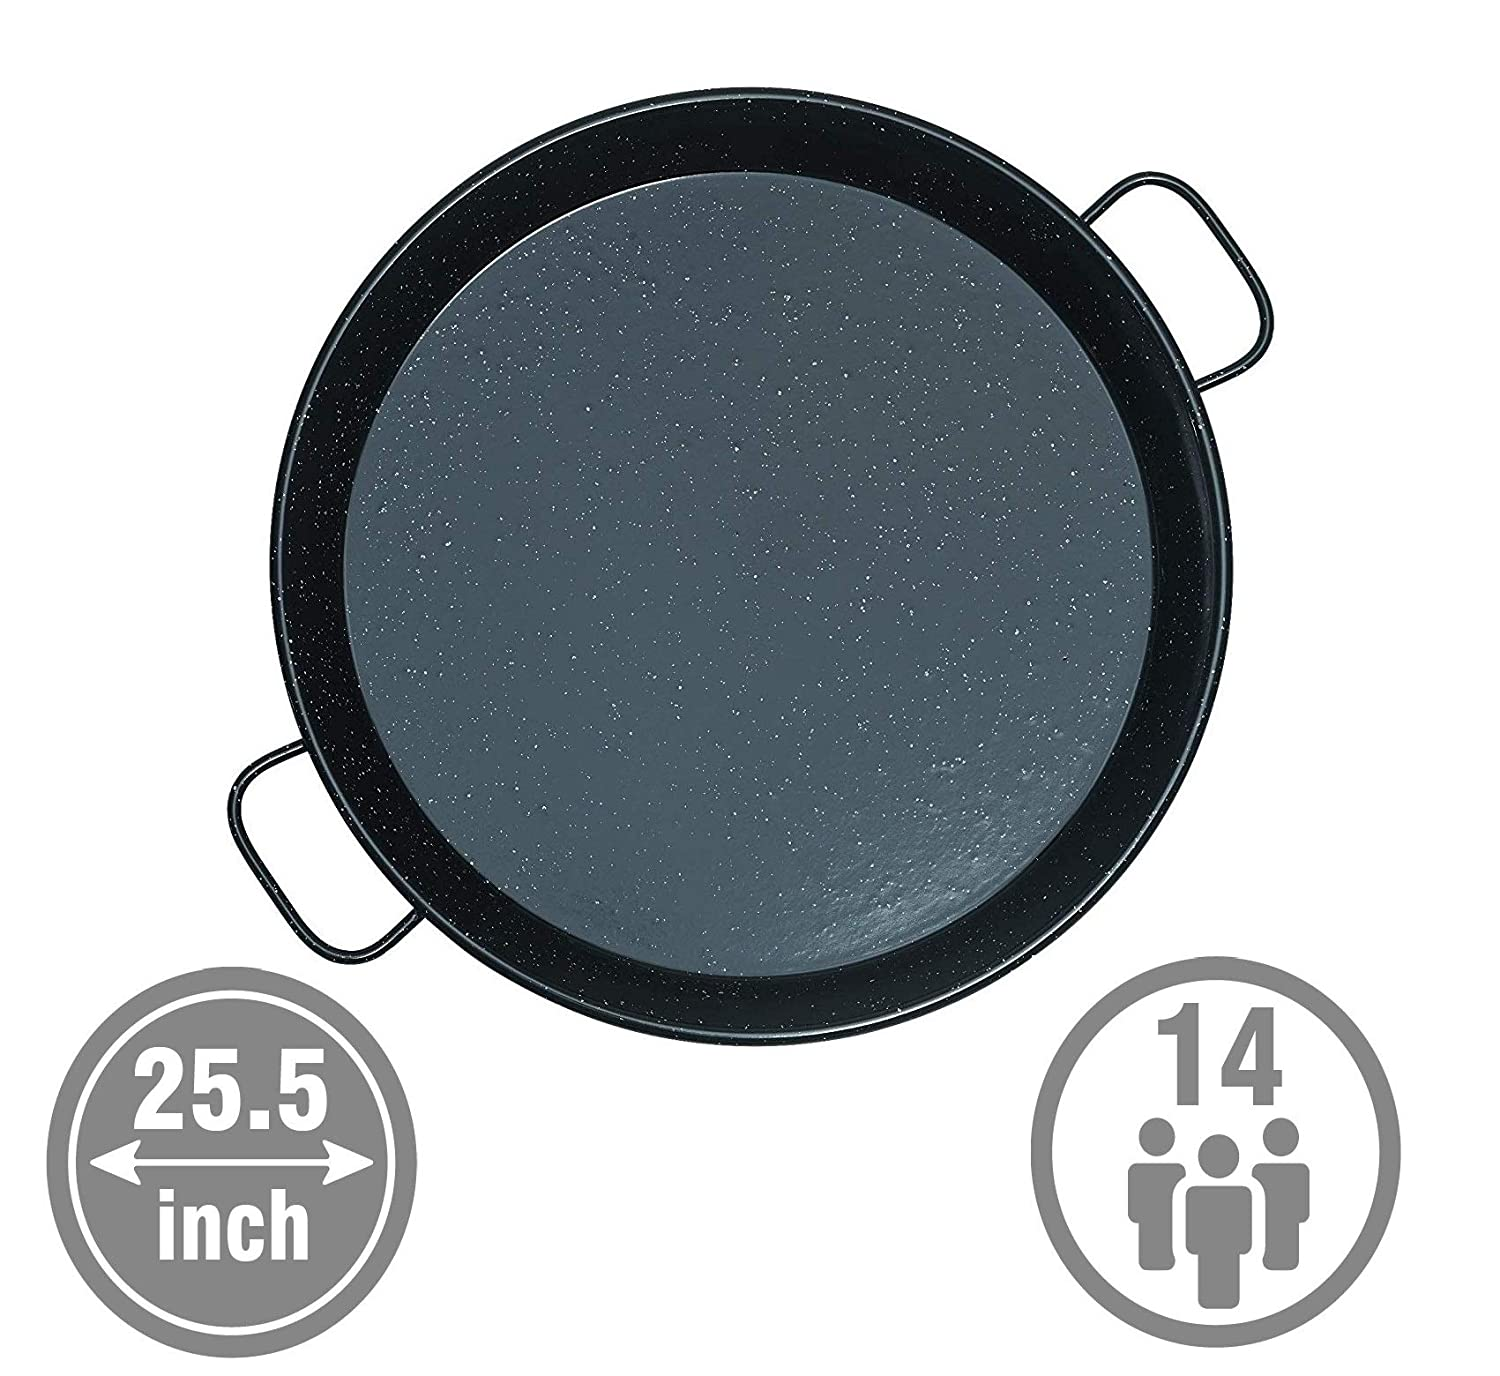 Mabel Home 25.5-inch Enamaled Steel Paella Pan, 65cm